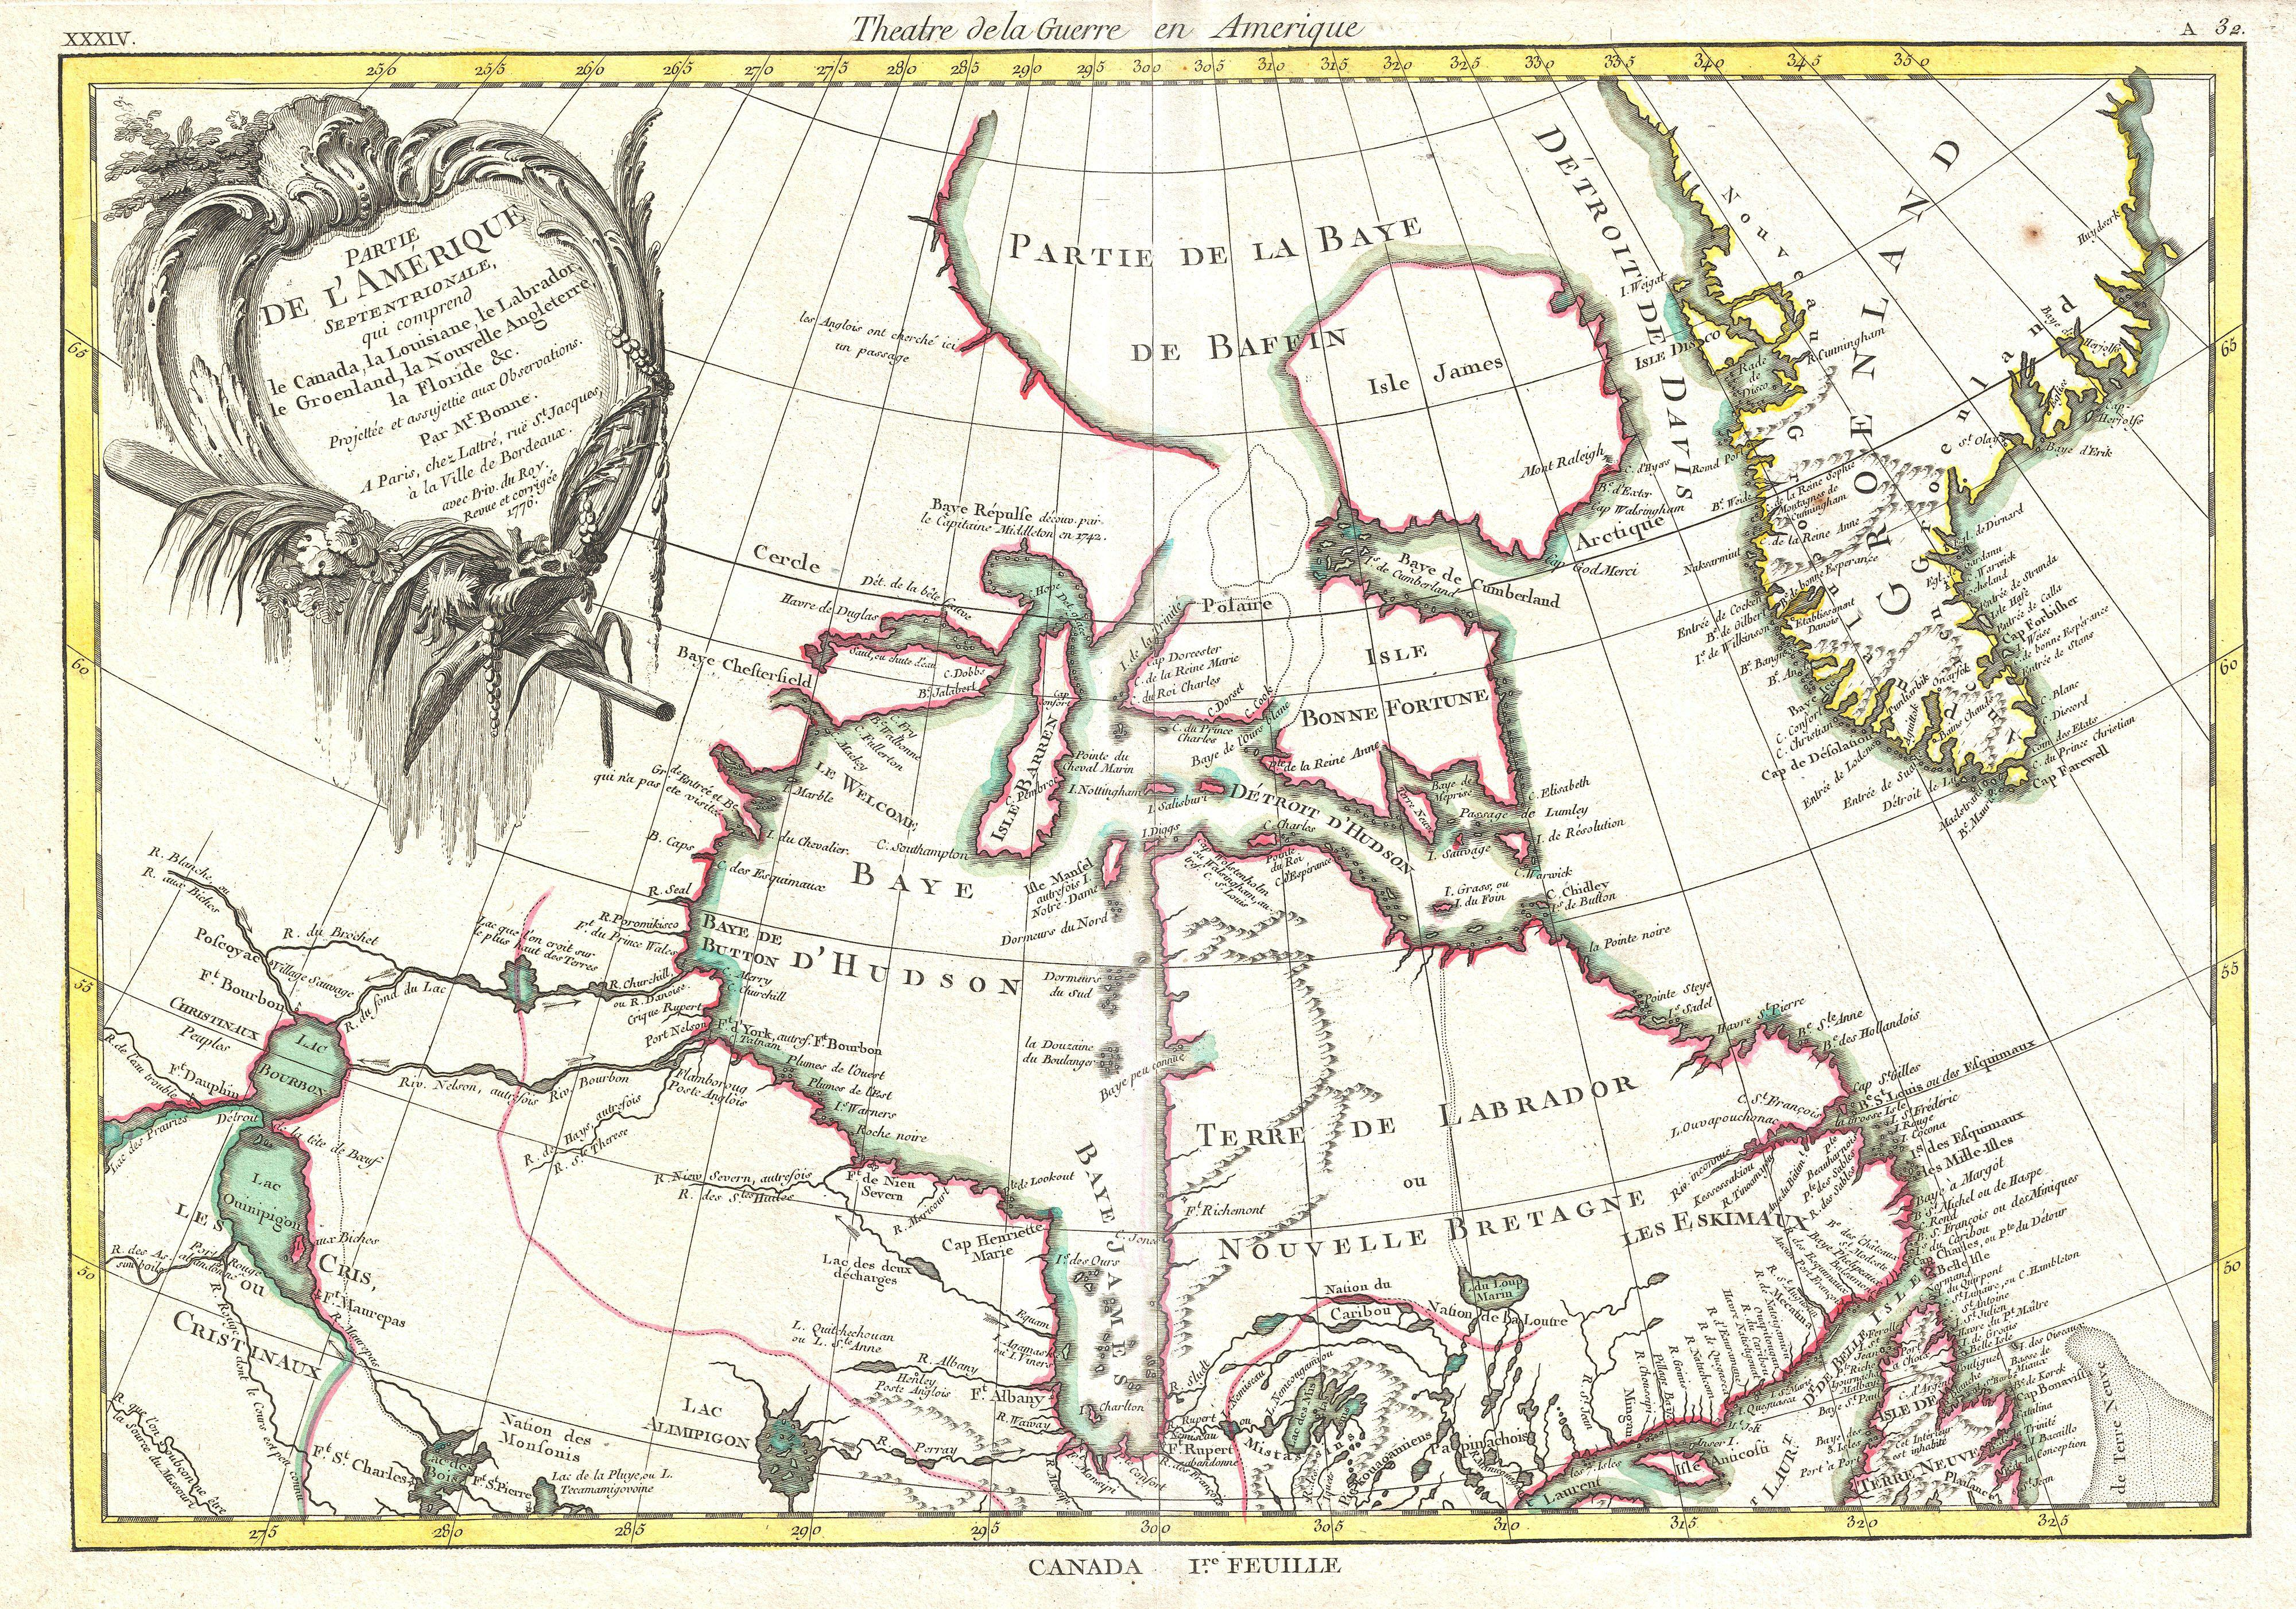 Lac Bourbon Map Canada File:1776 Bonne Map of the Hudson Bay, Canada   Geographicus